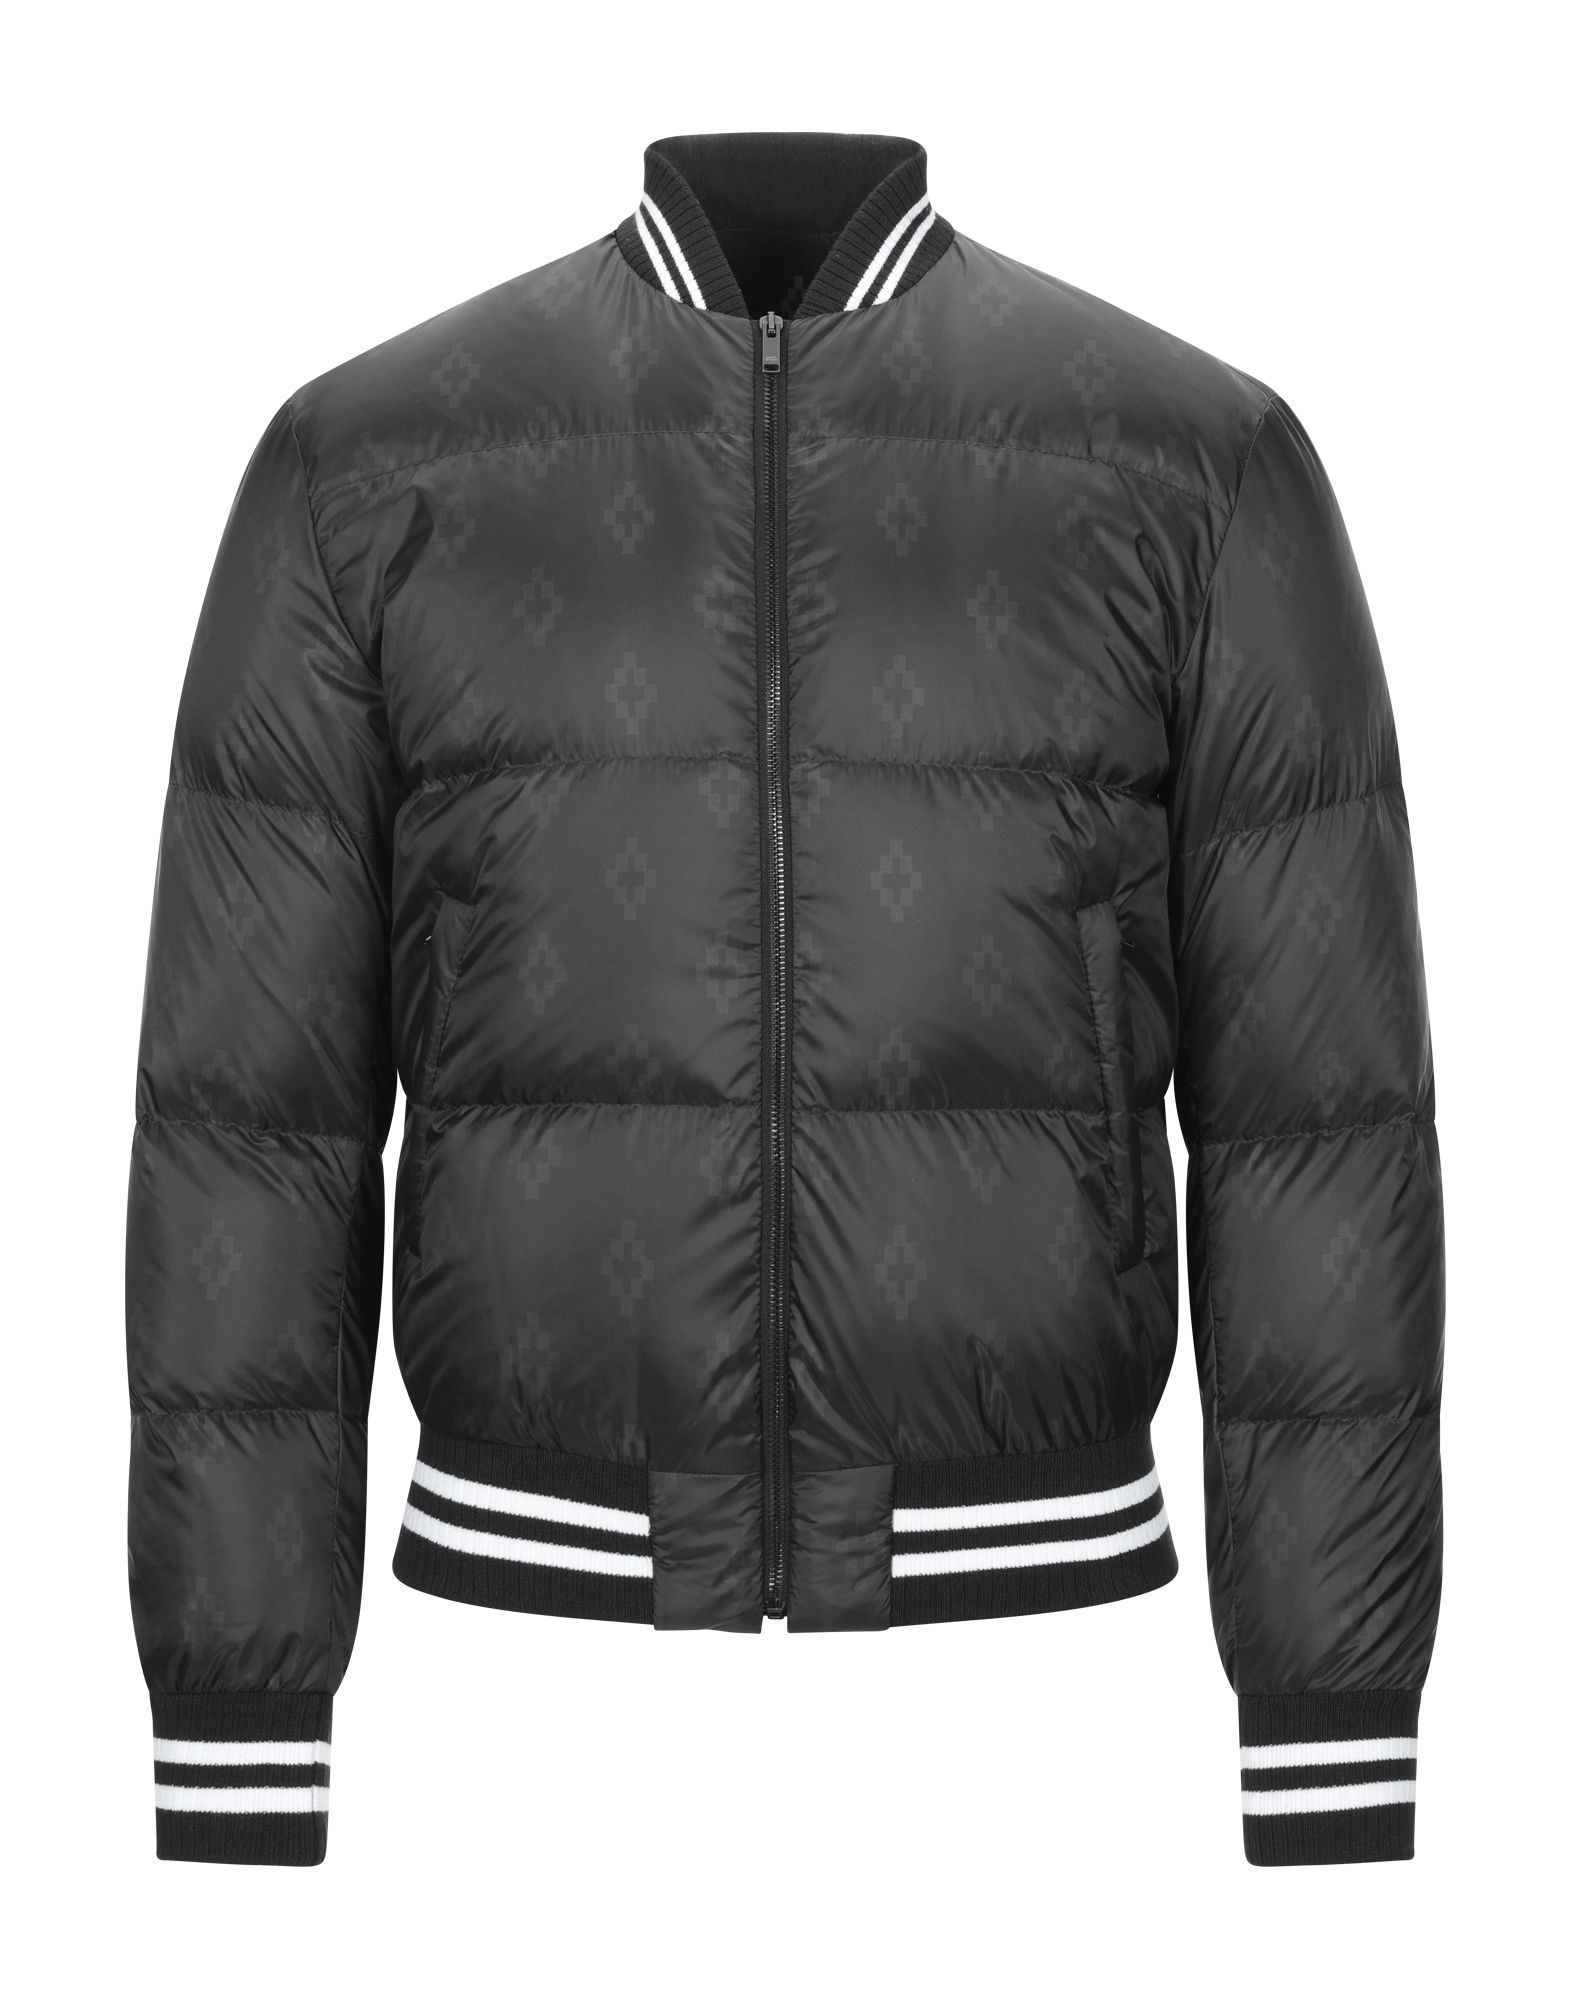 MARCELO BURLON Down jackets. duck down filling, techno fabric, single-breasted, round collar, multipockets, long sleeves, zipper closure, solid color, knitted cuffs, contains non-textile parts of animal origin. 100% Polyester, Polyamide, Elastane